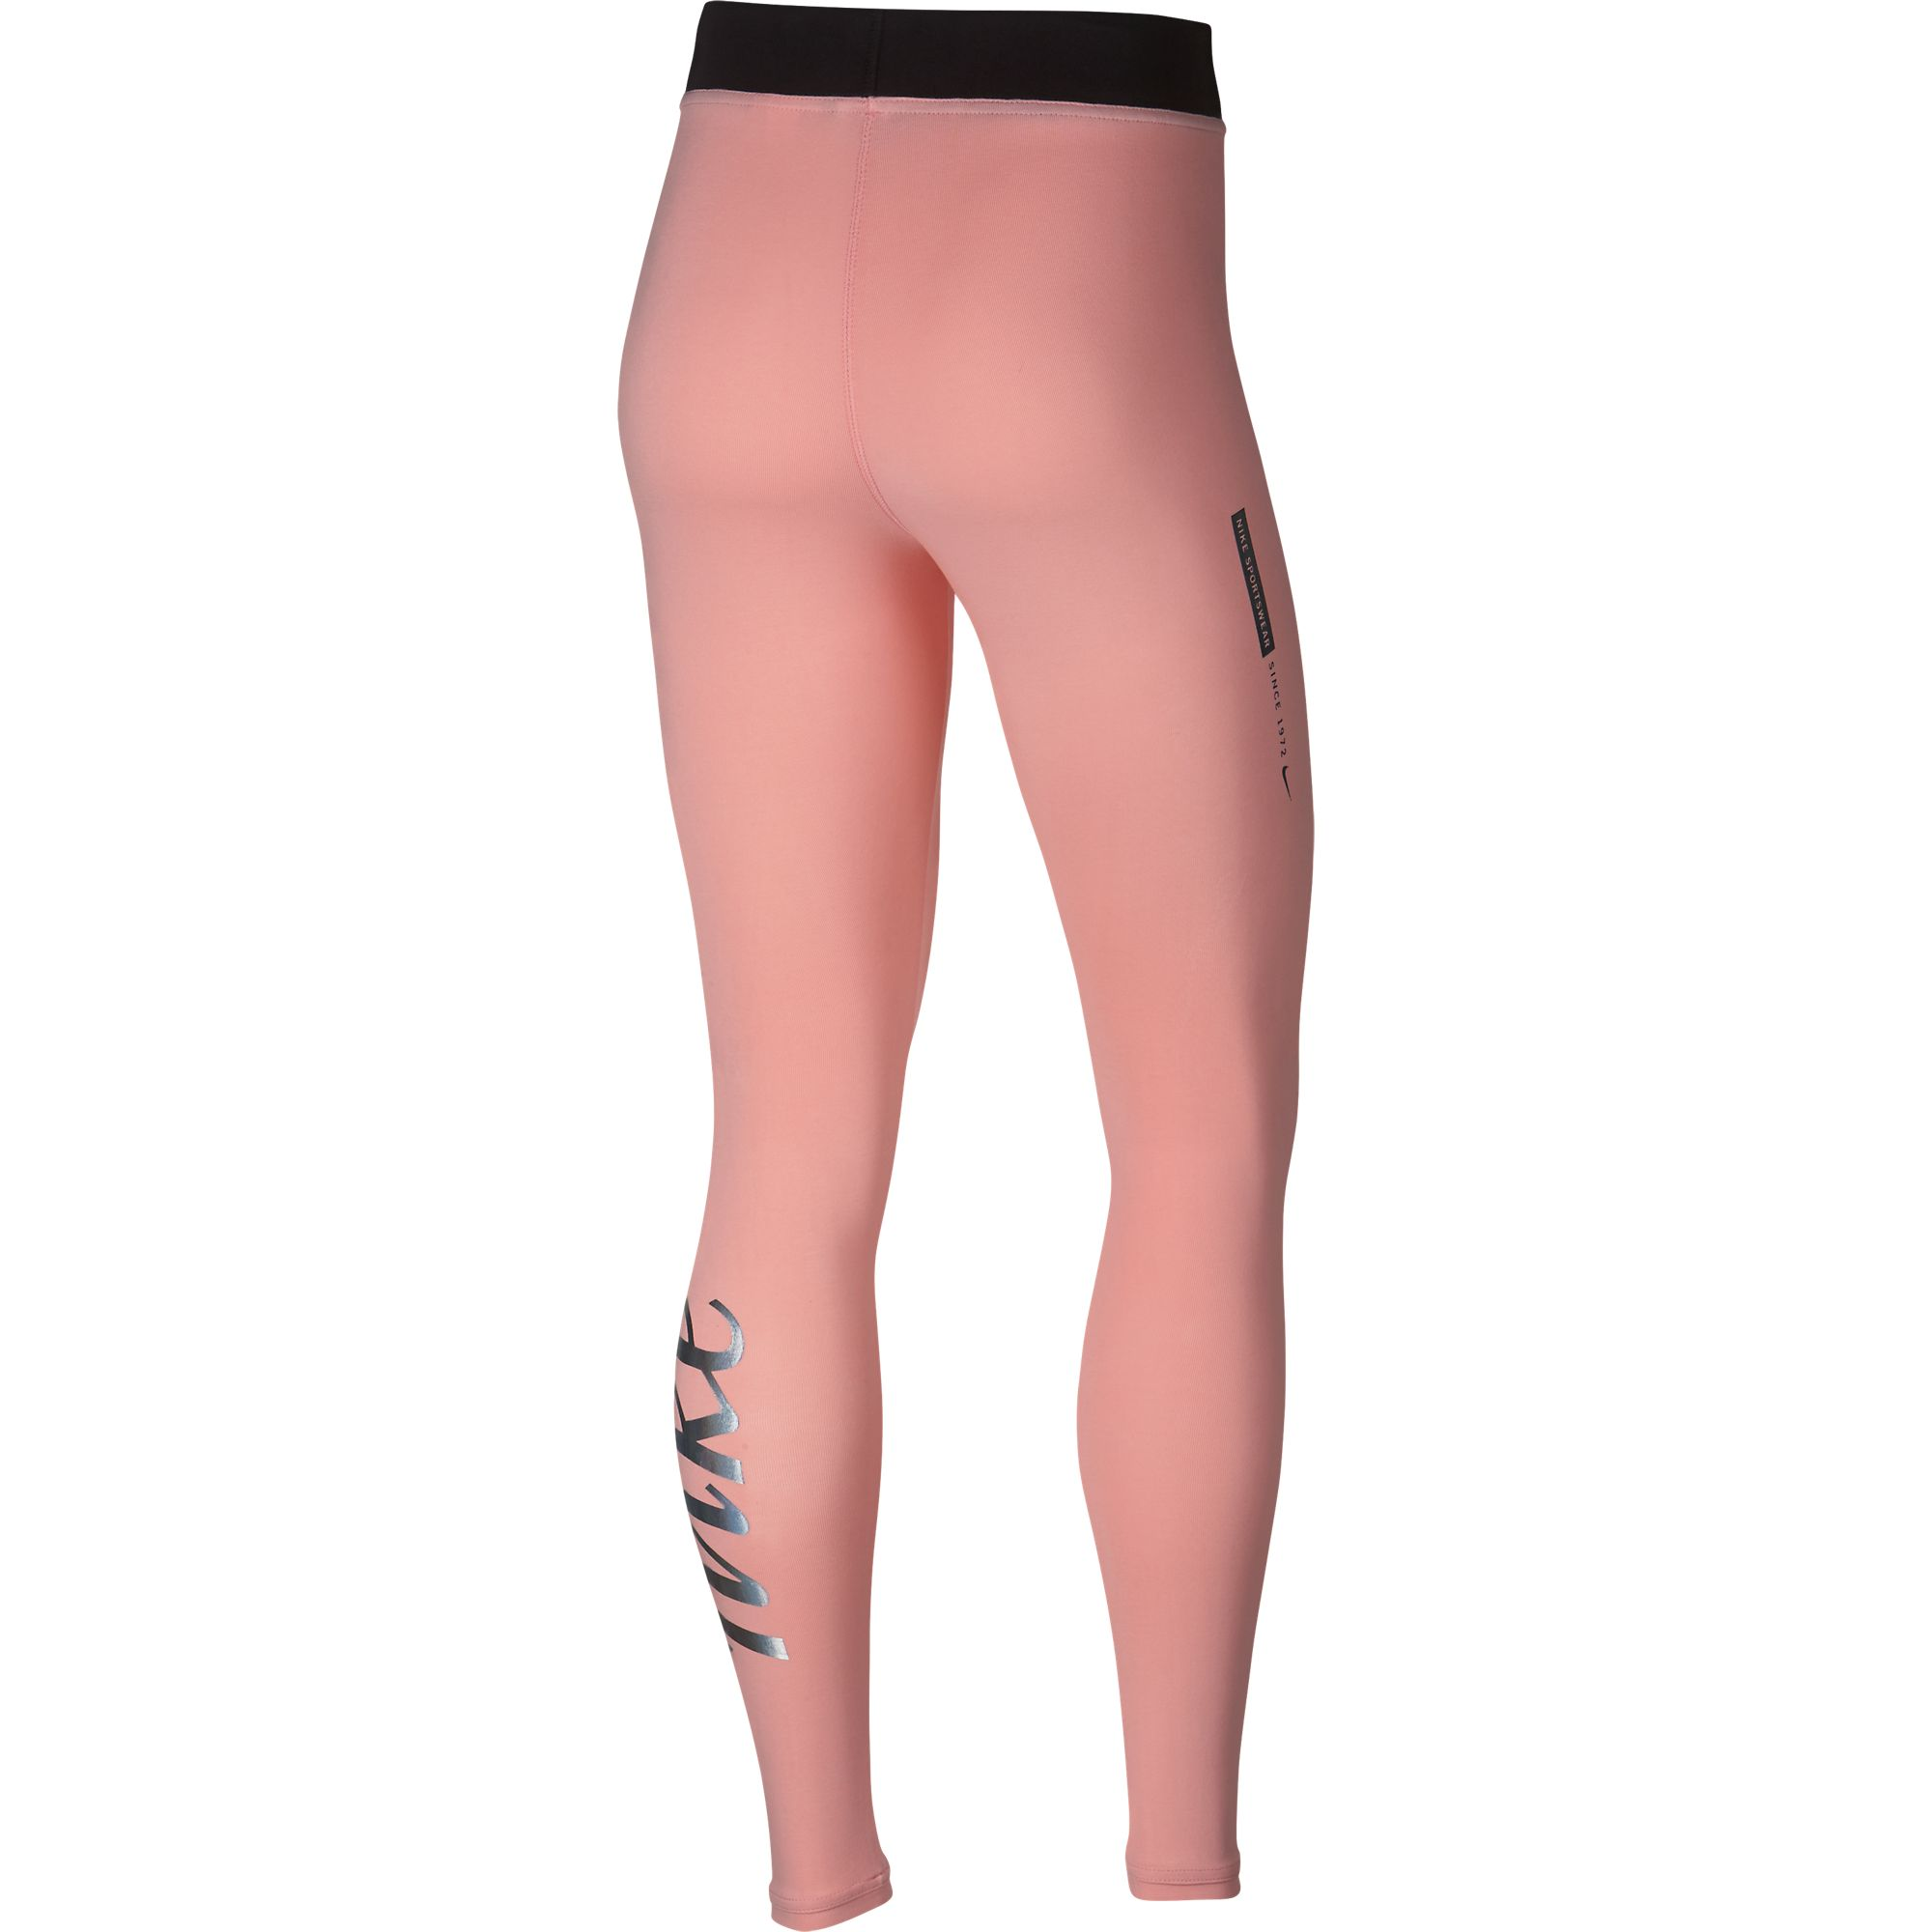 quite nice skate shoes clearance prices Details about Nike Women's Sportswear High Waisted Metallic Leggings Pink  AH9961-697